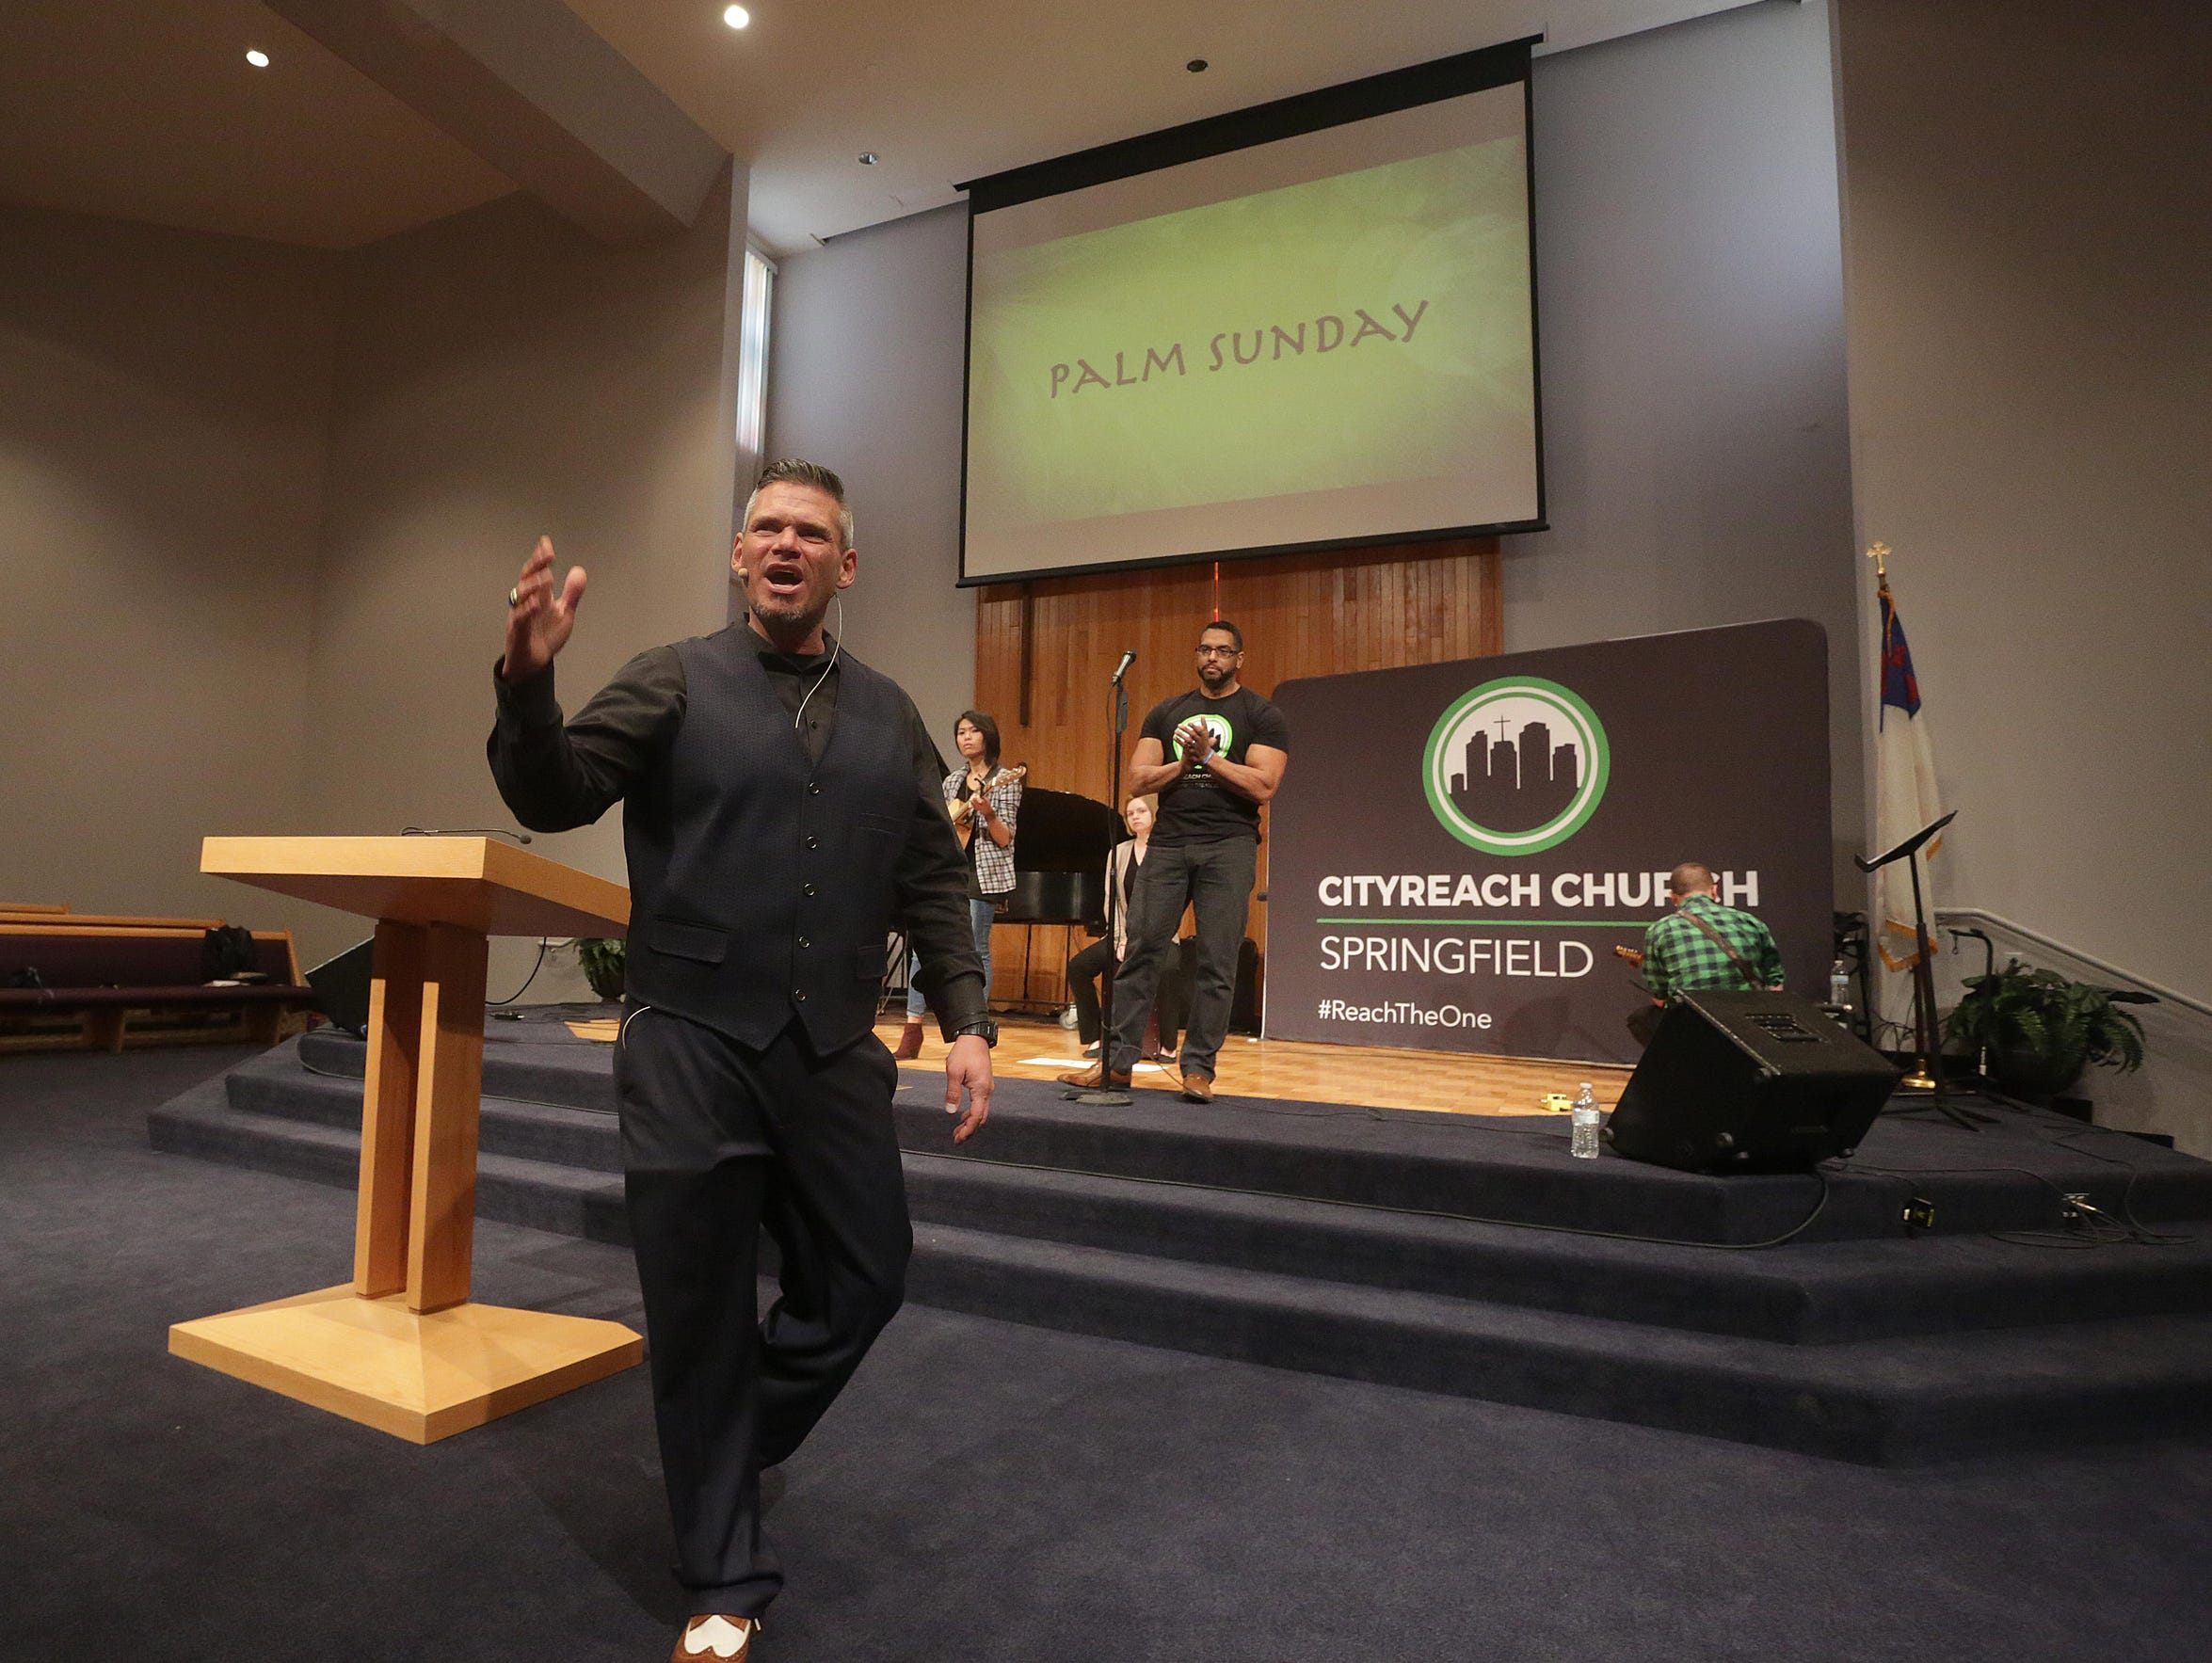 Newly formed CityReach Church is led by Pastor John